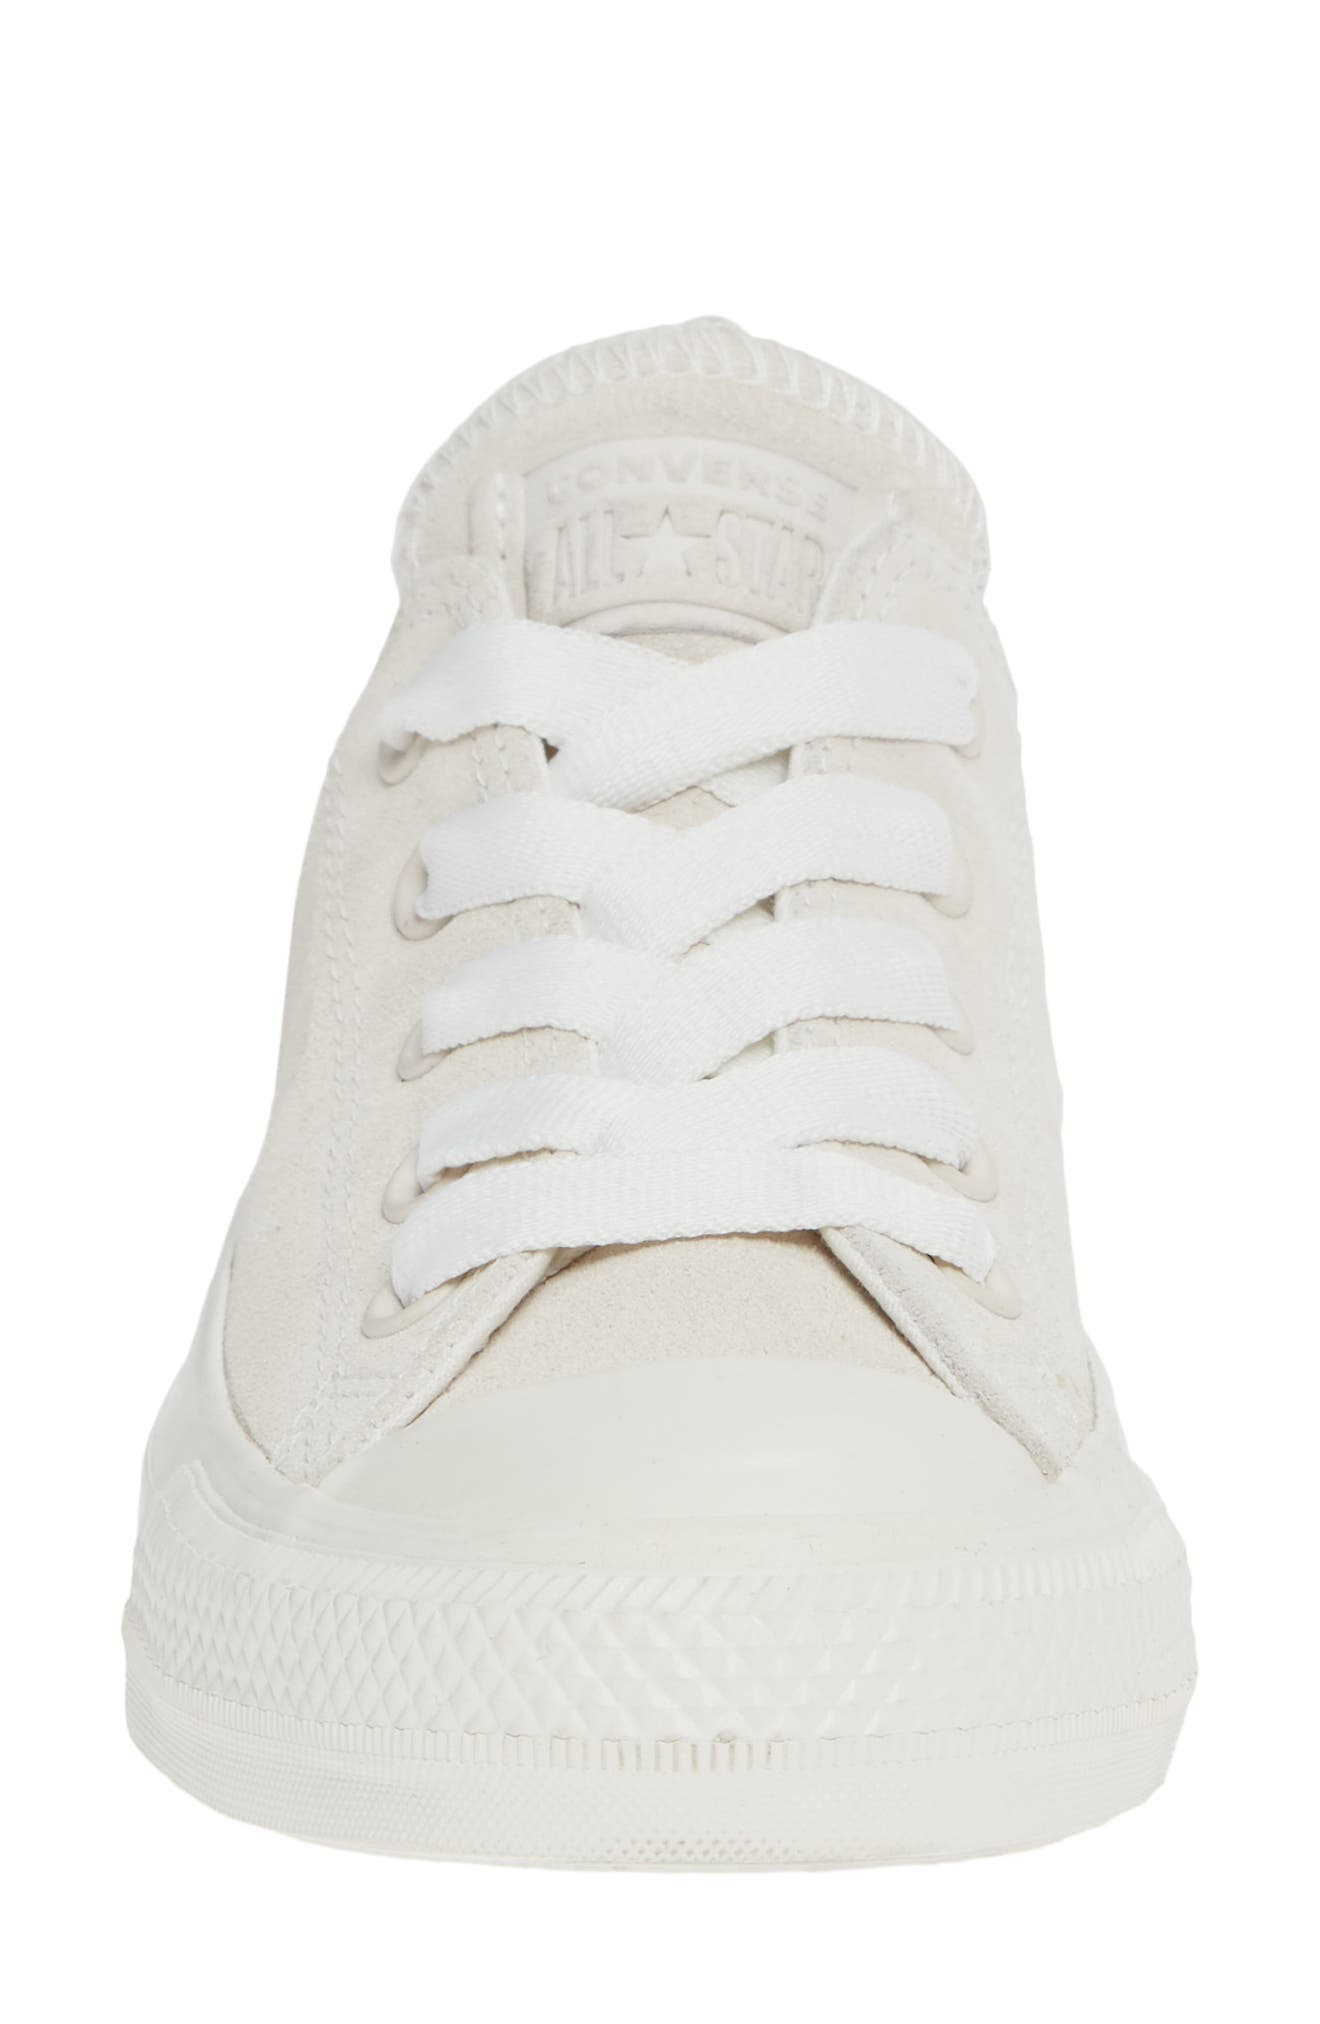 CONVERSE, Chuck Taylor<sup>®</sup> All Star<sup>®</sup> Ox Sneaker, Alternate thumbnail 4, color, VINTAGE WHITE SUEDE